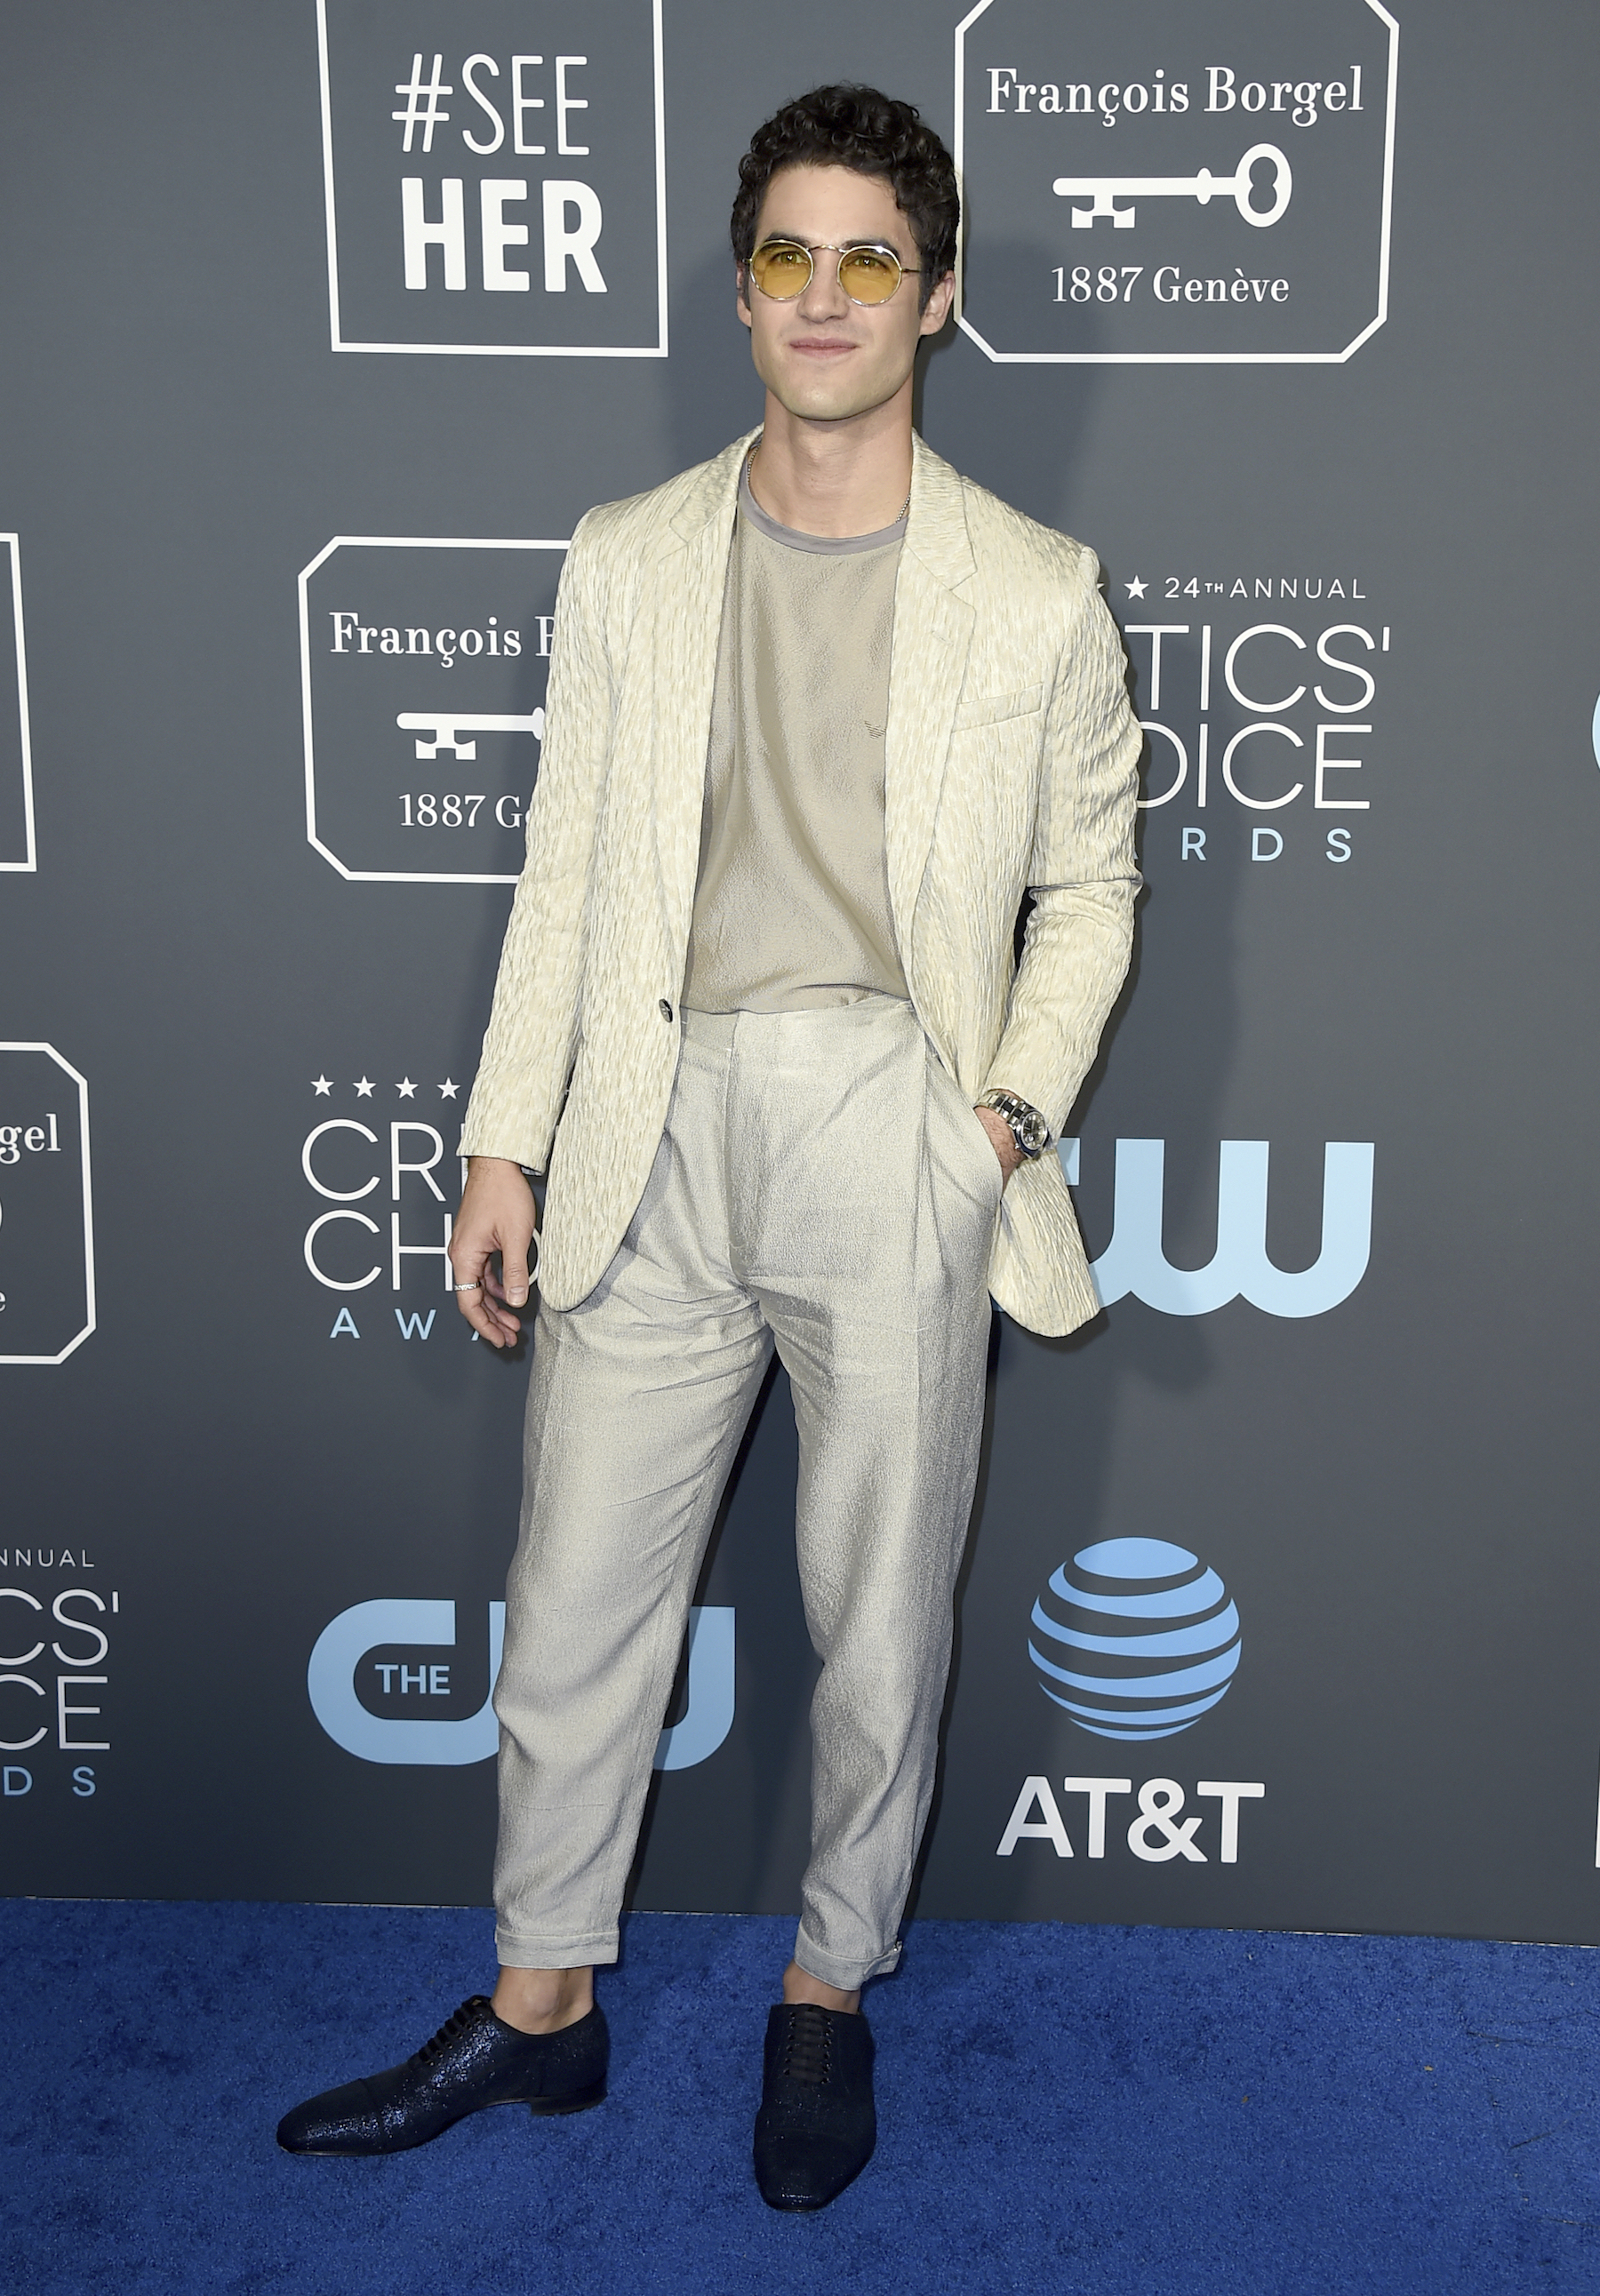 <div class='meta'><div class='origin-logo' data-origin='AP'></div><span class='caption-text' data-credit='Jordan Strauss/Invision/AP'>Darren Criss arrives at the 24th annual Critics' Choice Awards on Sunday, Jan. 13, 2019, at the Barker Hangar in Santa Monica, Calif.</span></div>